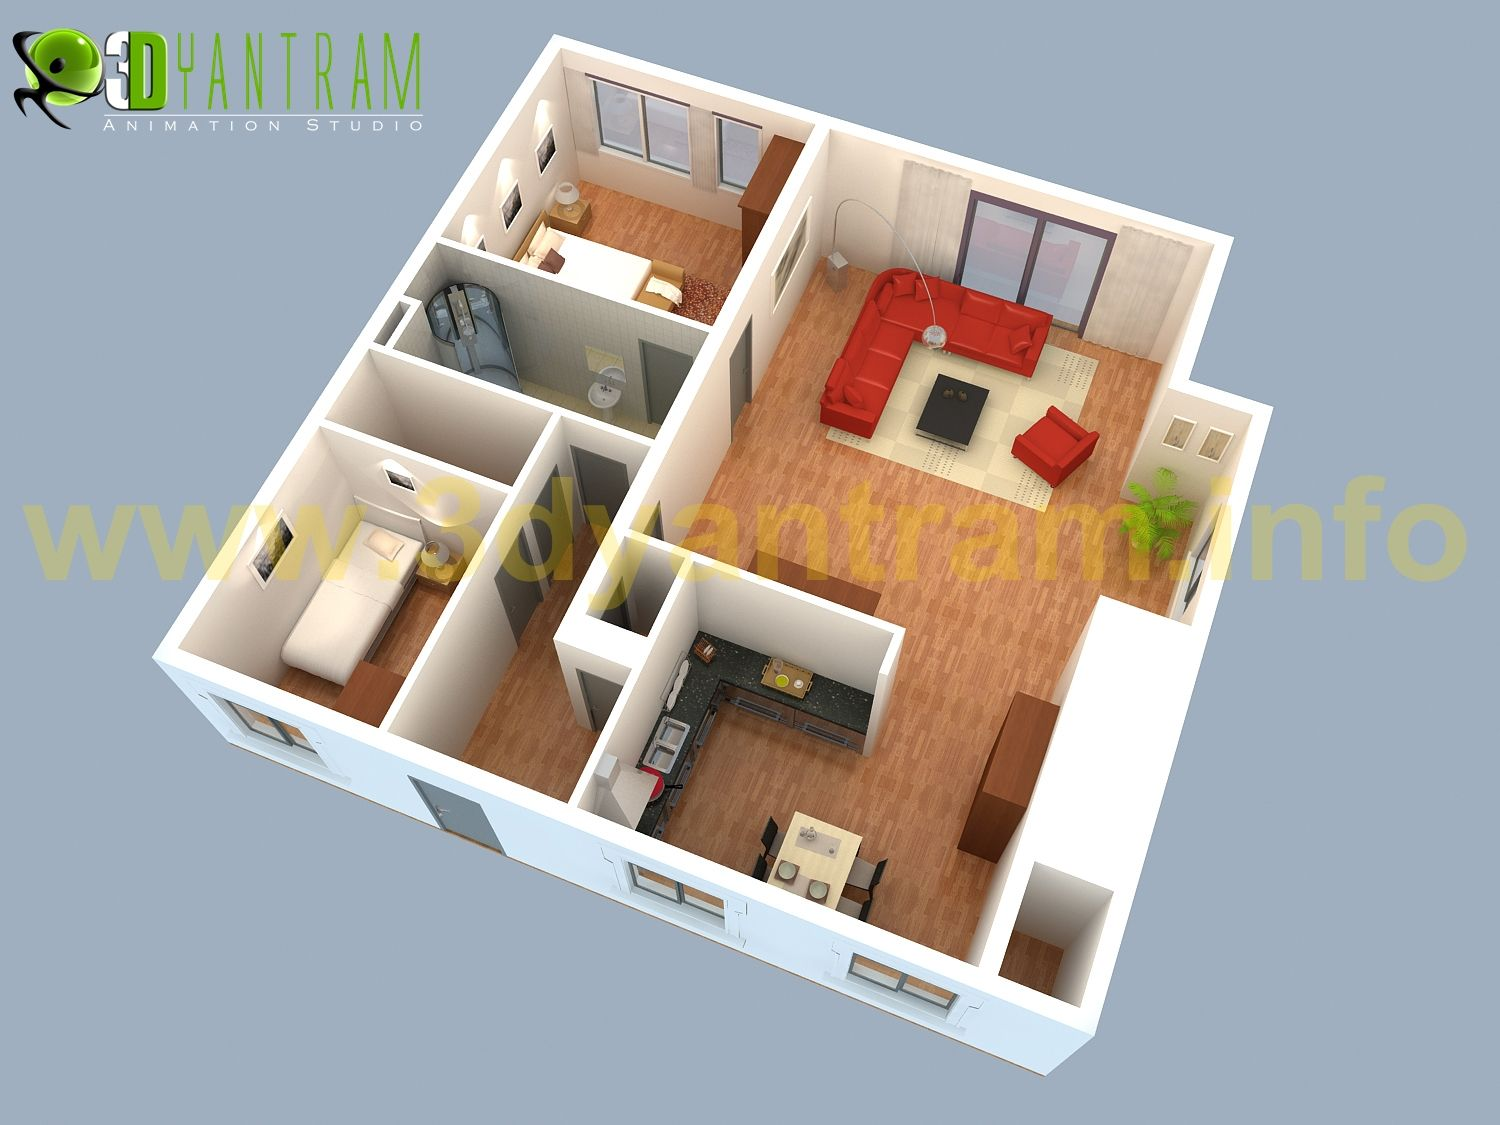 Small House 3d Floor Plan Design Cgi 3d House Plans Small House Design House Plan Maker